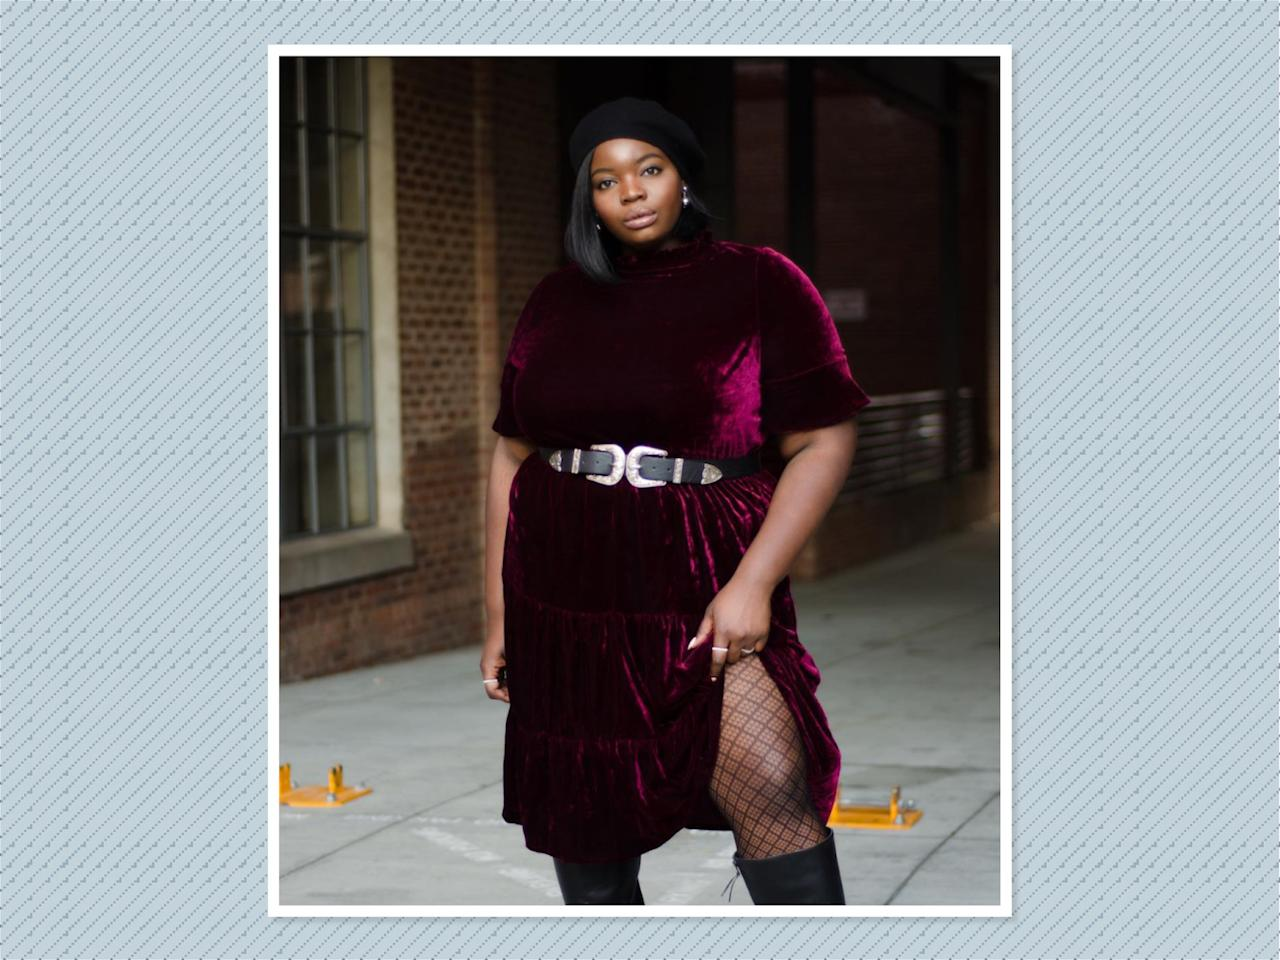 "<p>A velour dress is a classic fall essential. <a rel=""nofollow"" href=""https://www.instagram.com/p/BZy3wEqFuwe/?hl=en&taken-by=onacurve"">Valerie Eguavoen</a> styles it perfectly by belting it at the waist and pairing with fishnet tights to add texture. (Photo: Valerie Eguavoen) </p>"